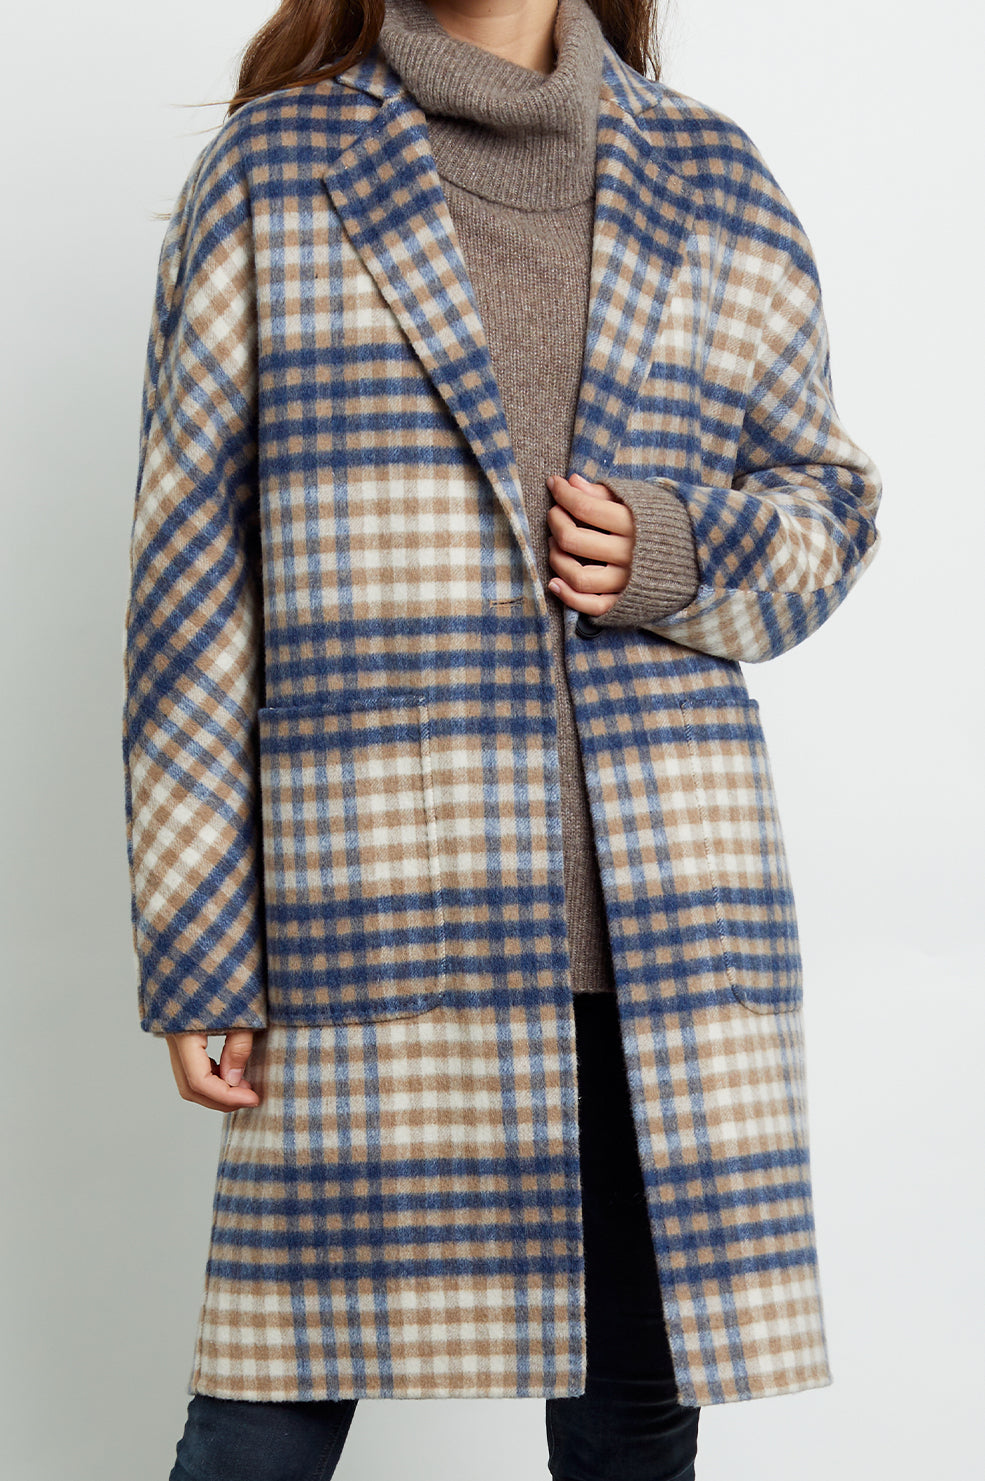 Everest wool blend trench coat in beige blue plaid - detail